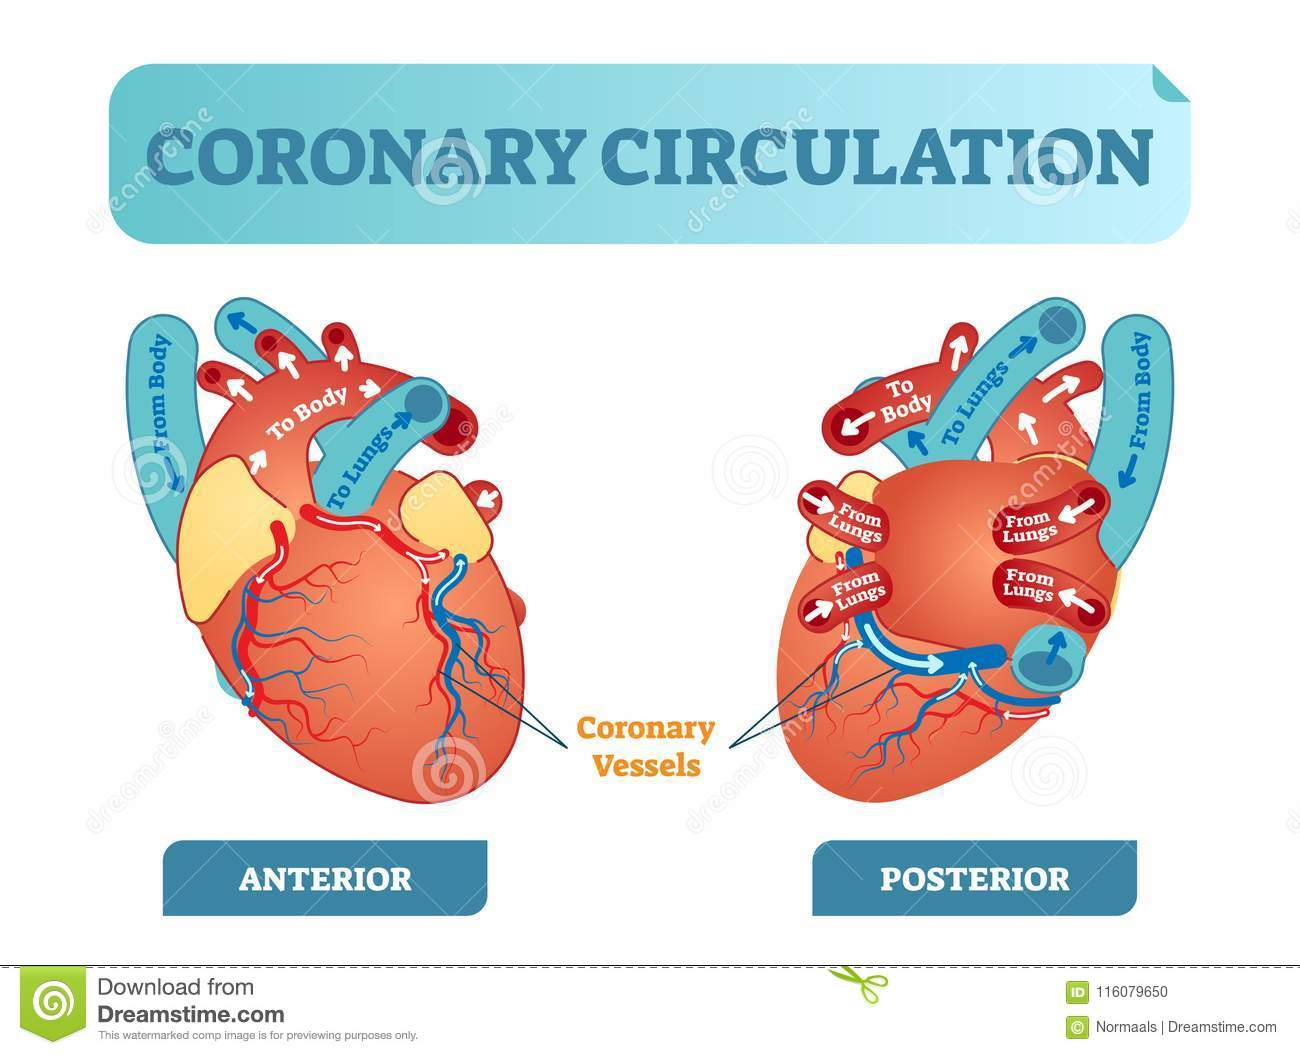 Coronary Circulation Anatomical Cross Section Diagram, Labeled ...